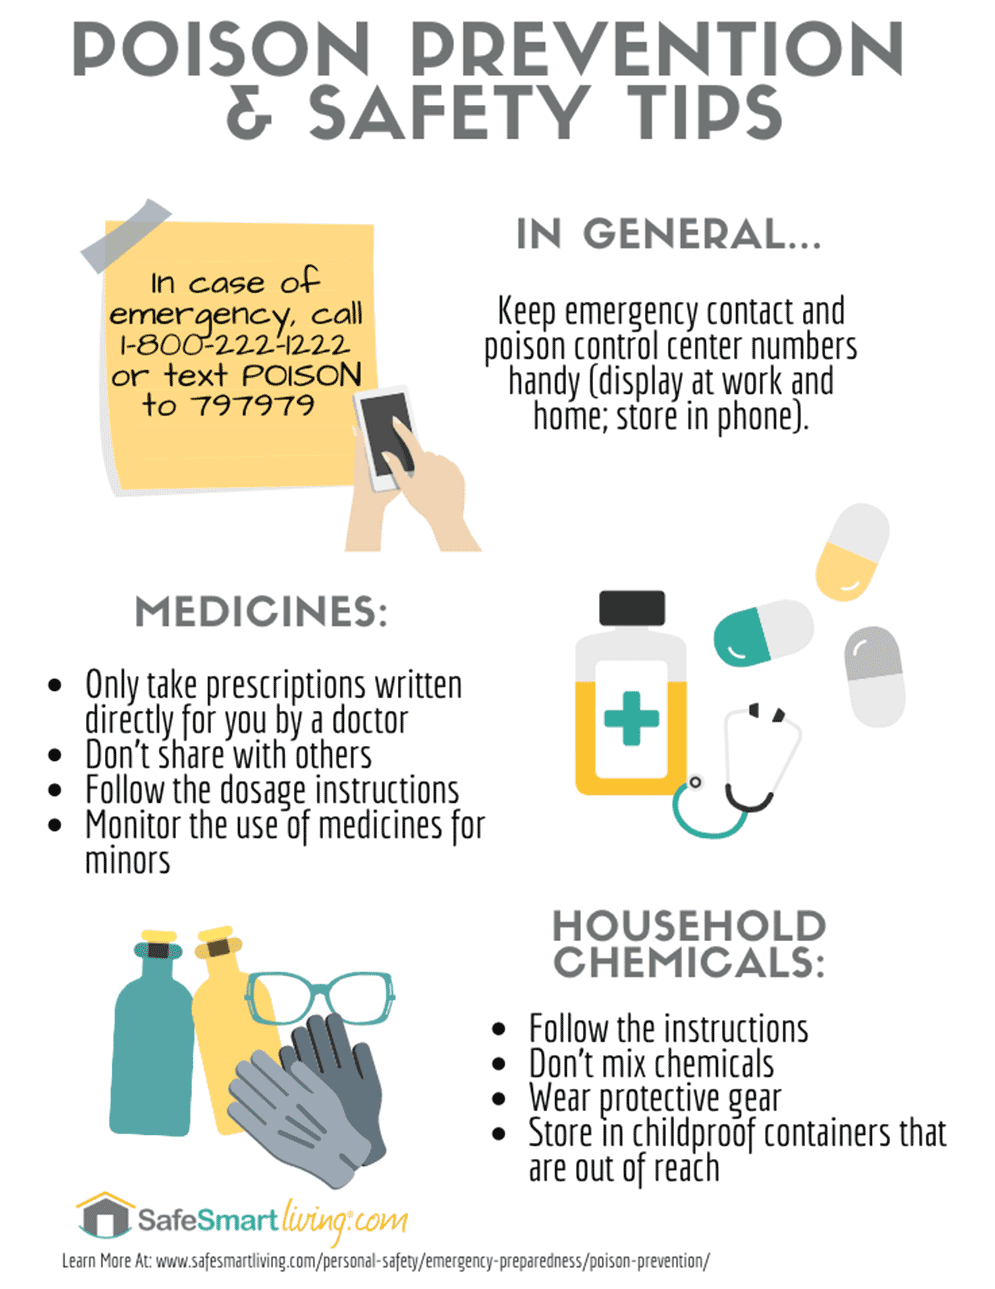 Poison Prevention & Safety Tips Infographic